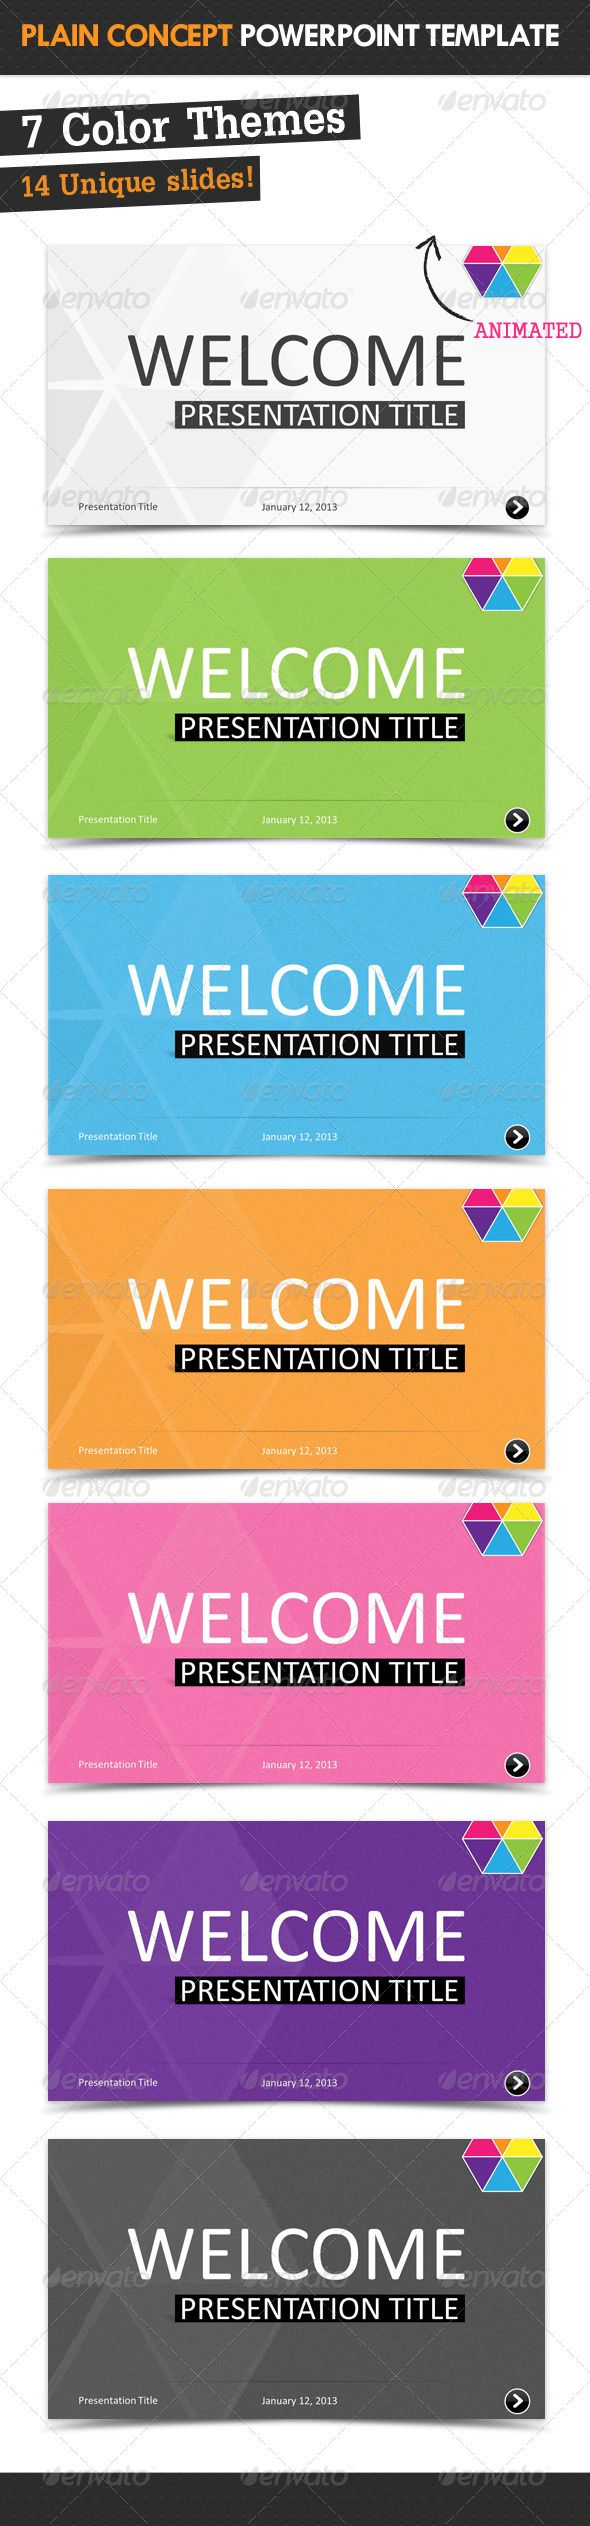 The 25 best ppt file ideas on pinterest power point plain concept powerpoint template toneelgroepblik Gallery